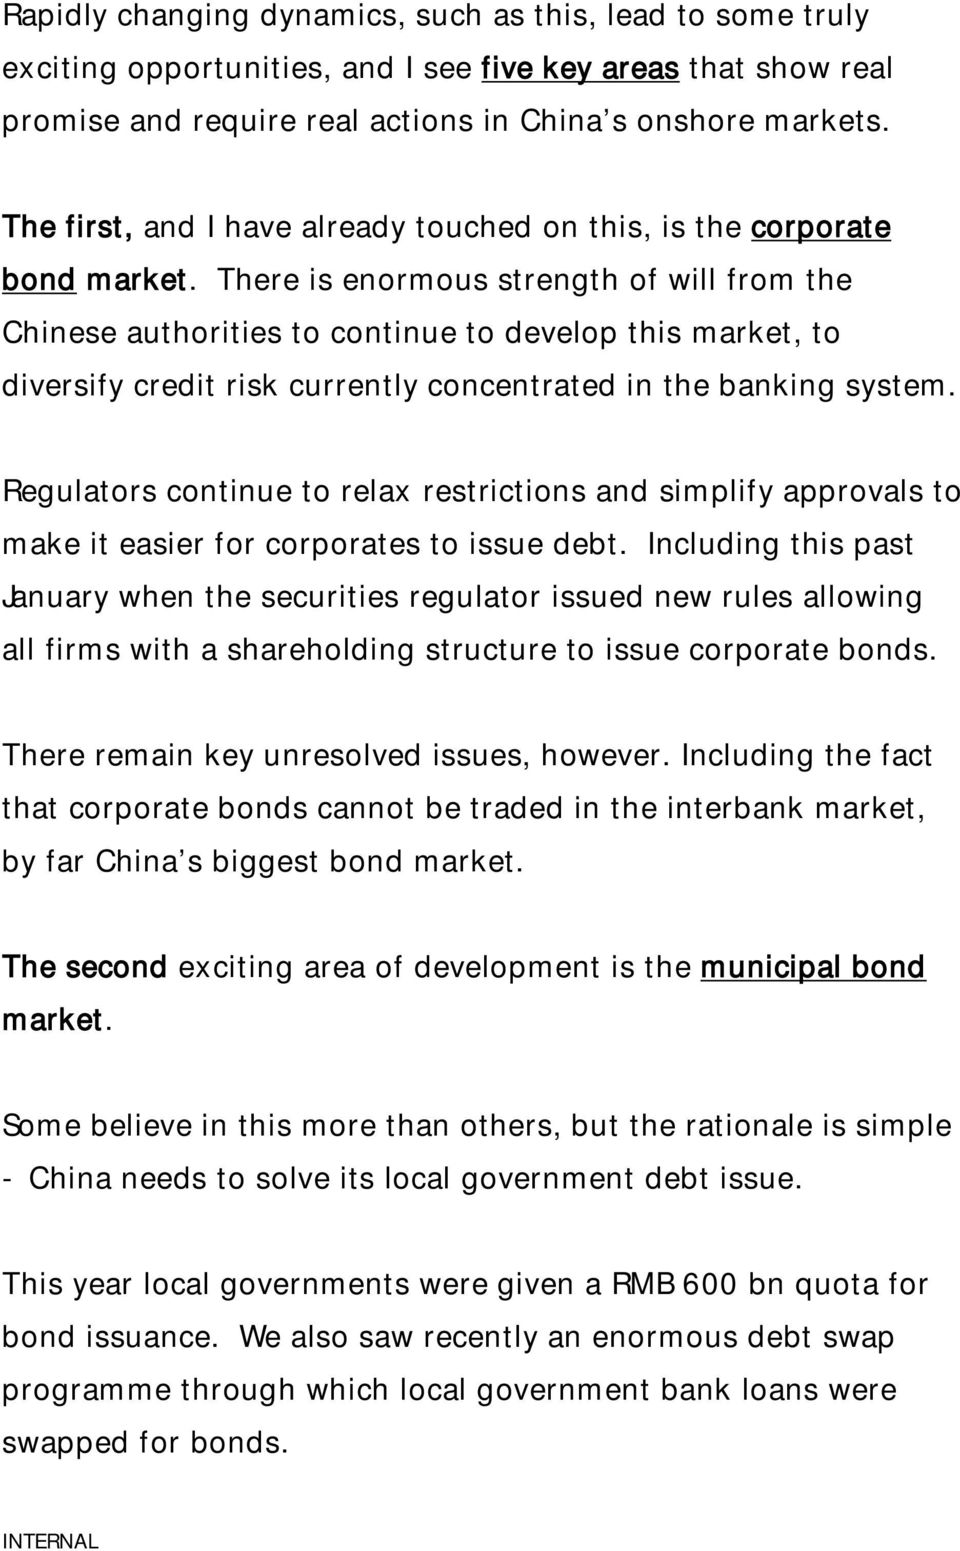 There is enormous strength of will from the Chinese authorities to continue to develop this market, to diversify credit risk currently concentrated in the banking system.